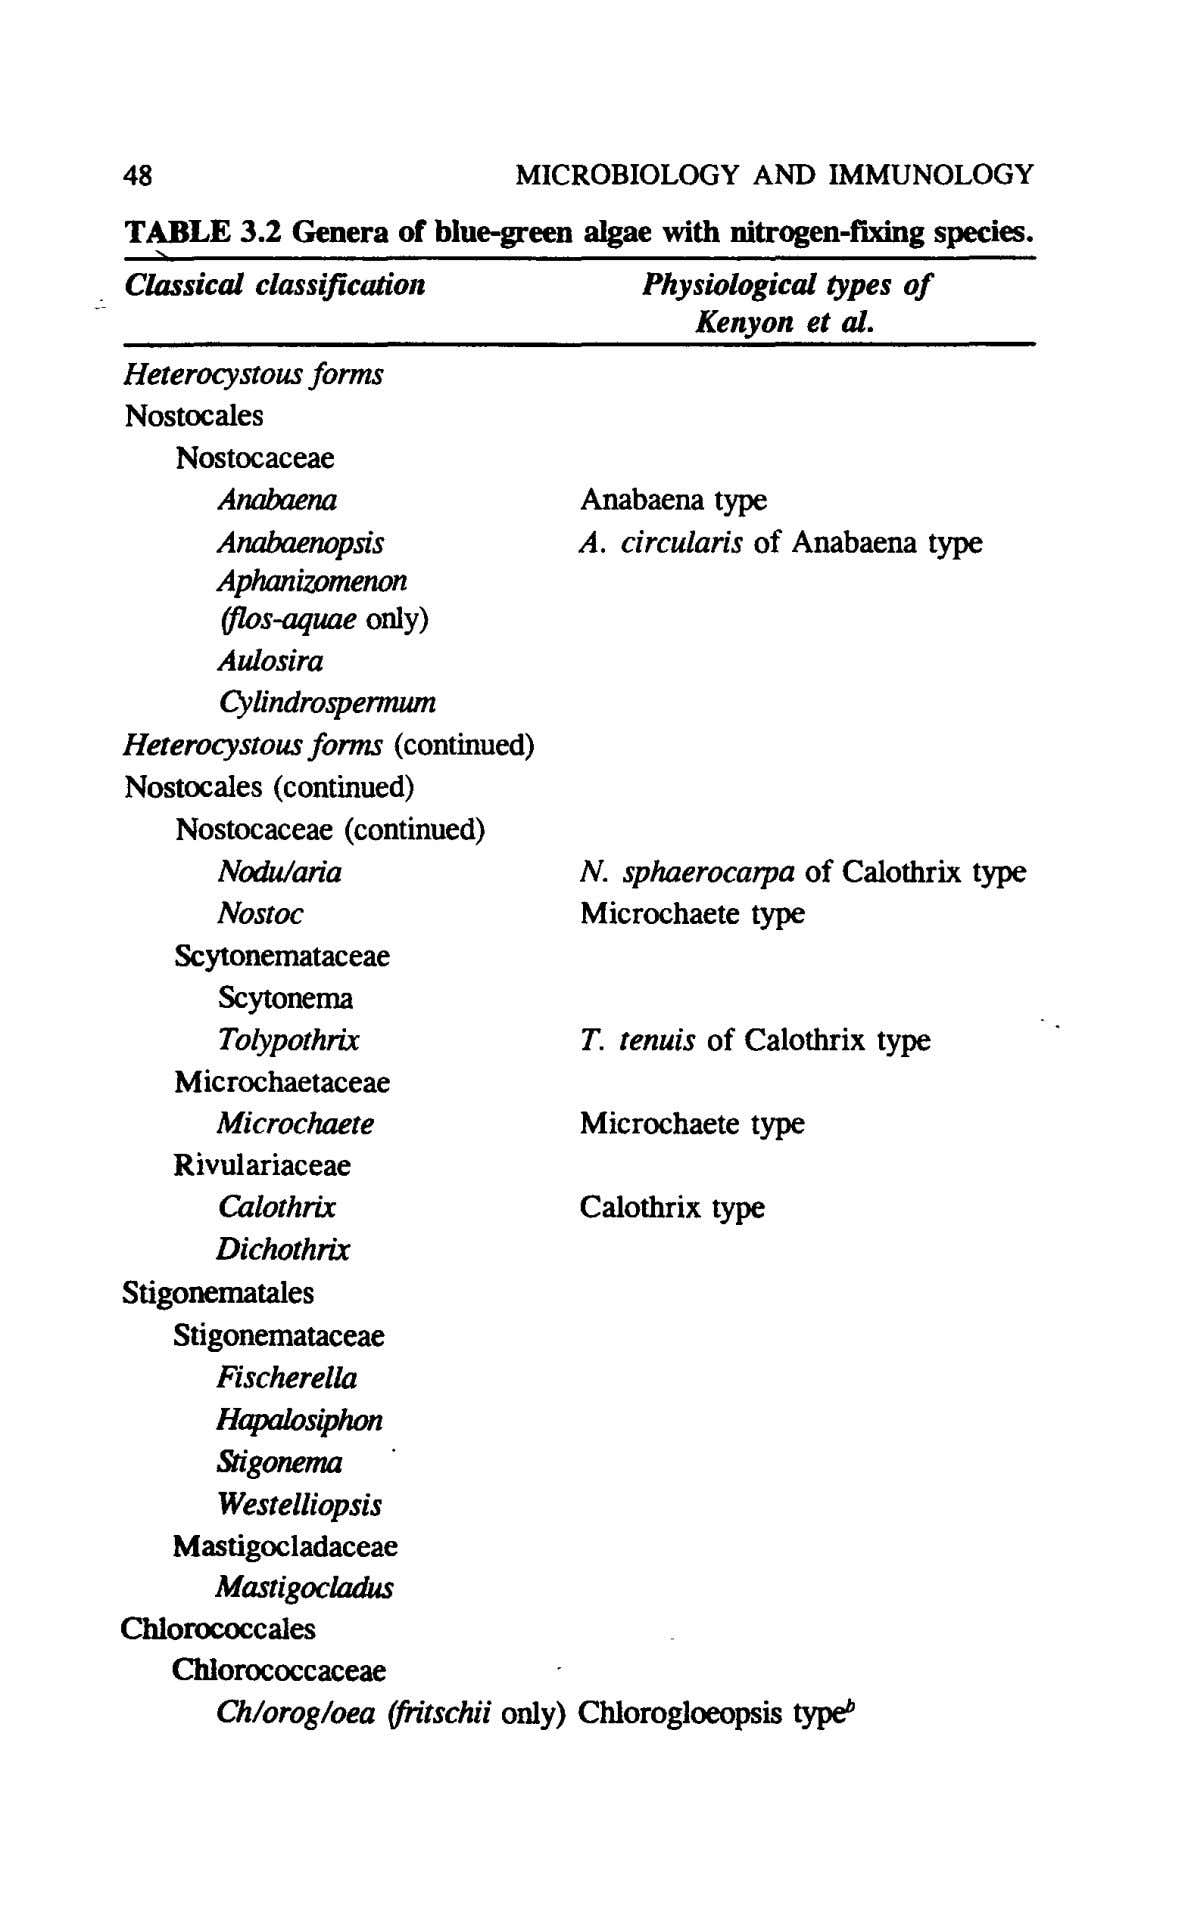 48 MICROBIOLOGY AND IMMUNOLOGY TABLE 3.2 Genera of blue-green algae with nitrogen-fixing species. > Classical